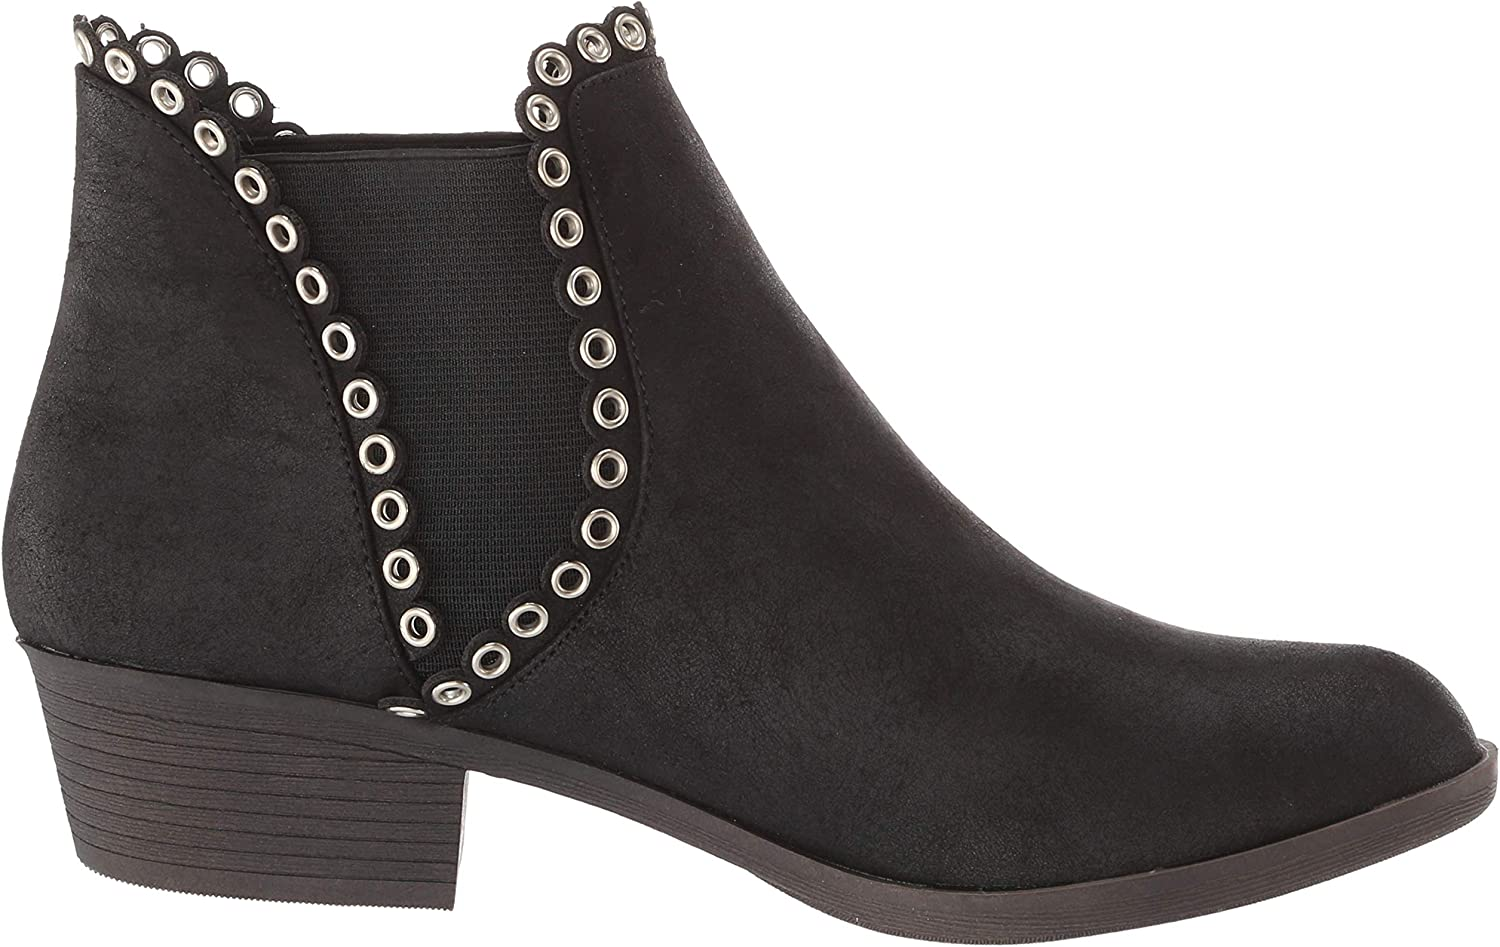 Sbicca Women's Marjorie Ankle Boot Black